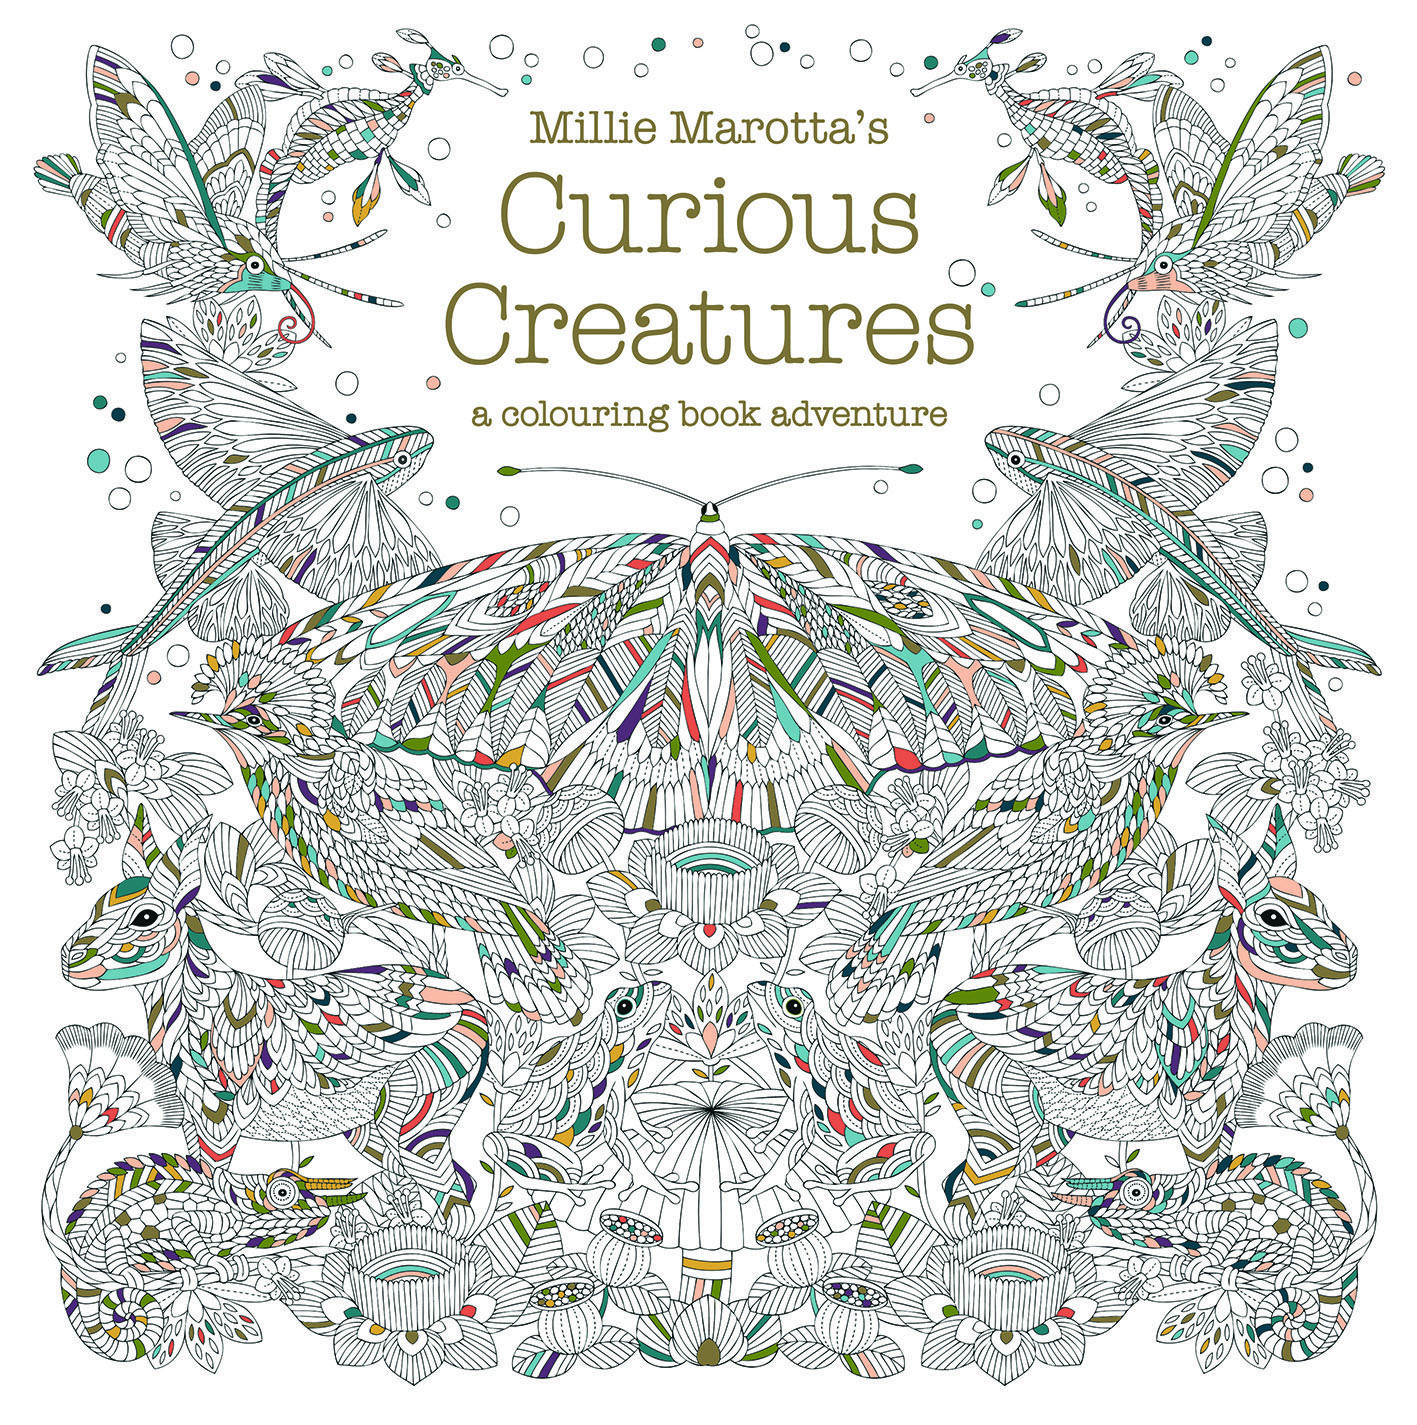 Millie Marottas Curious Creatures By Marotta Pavilion Shortlisted In The Best Colouring Book Category